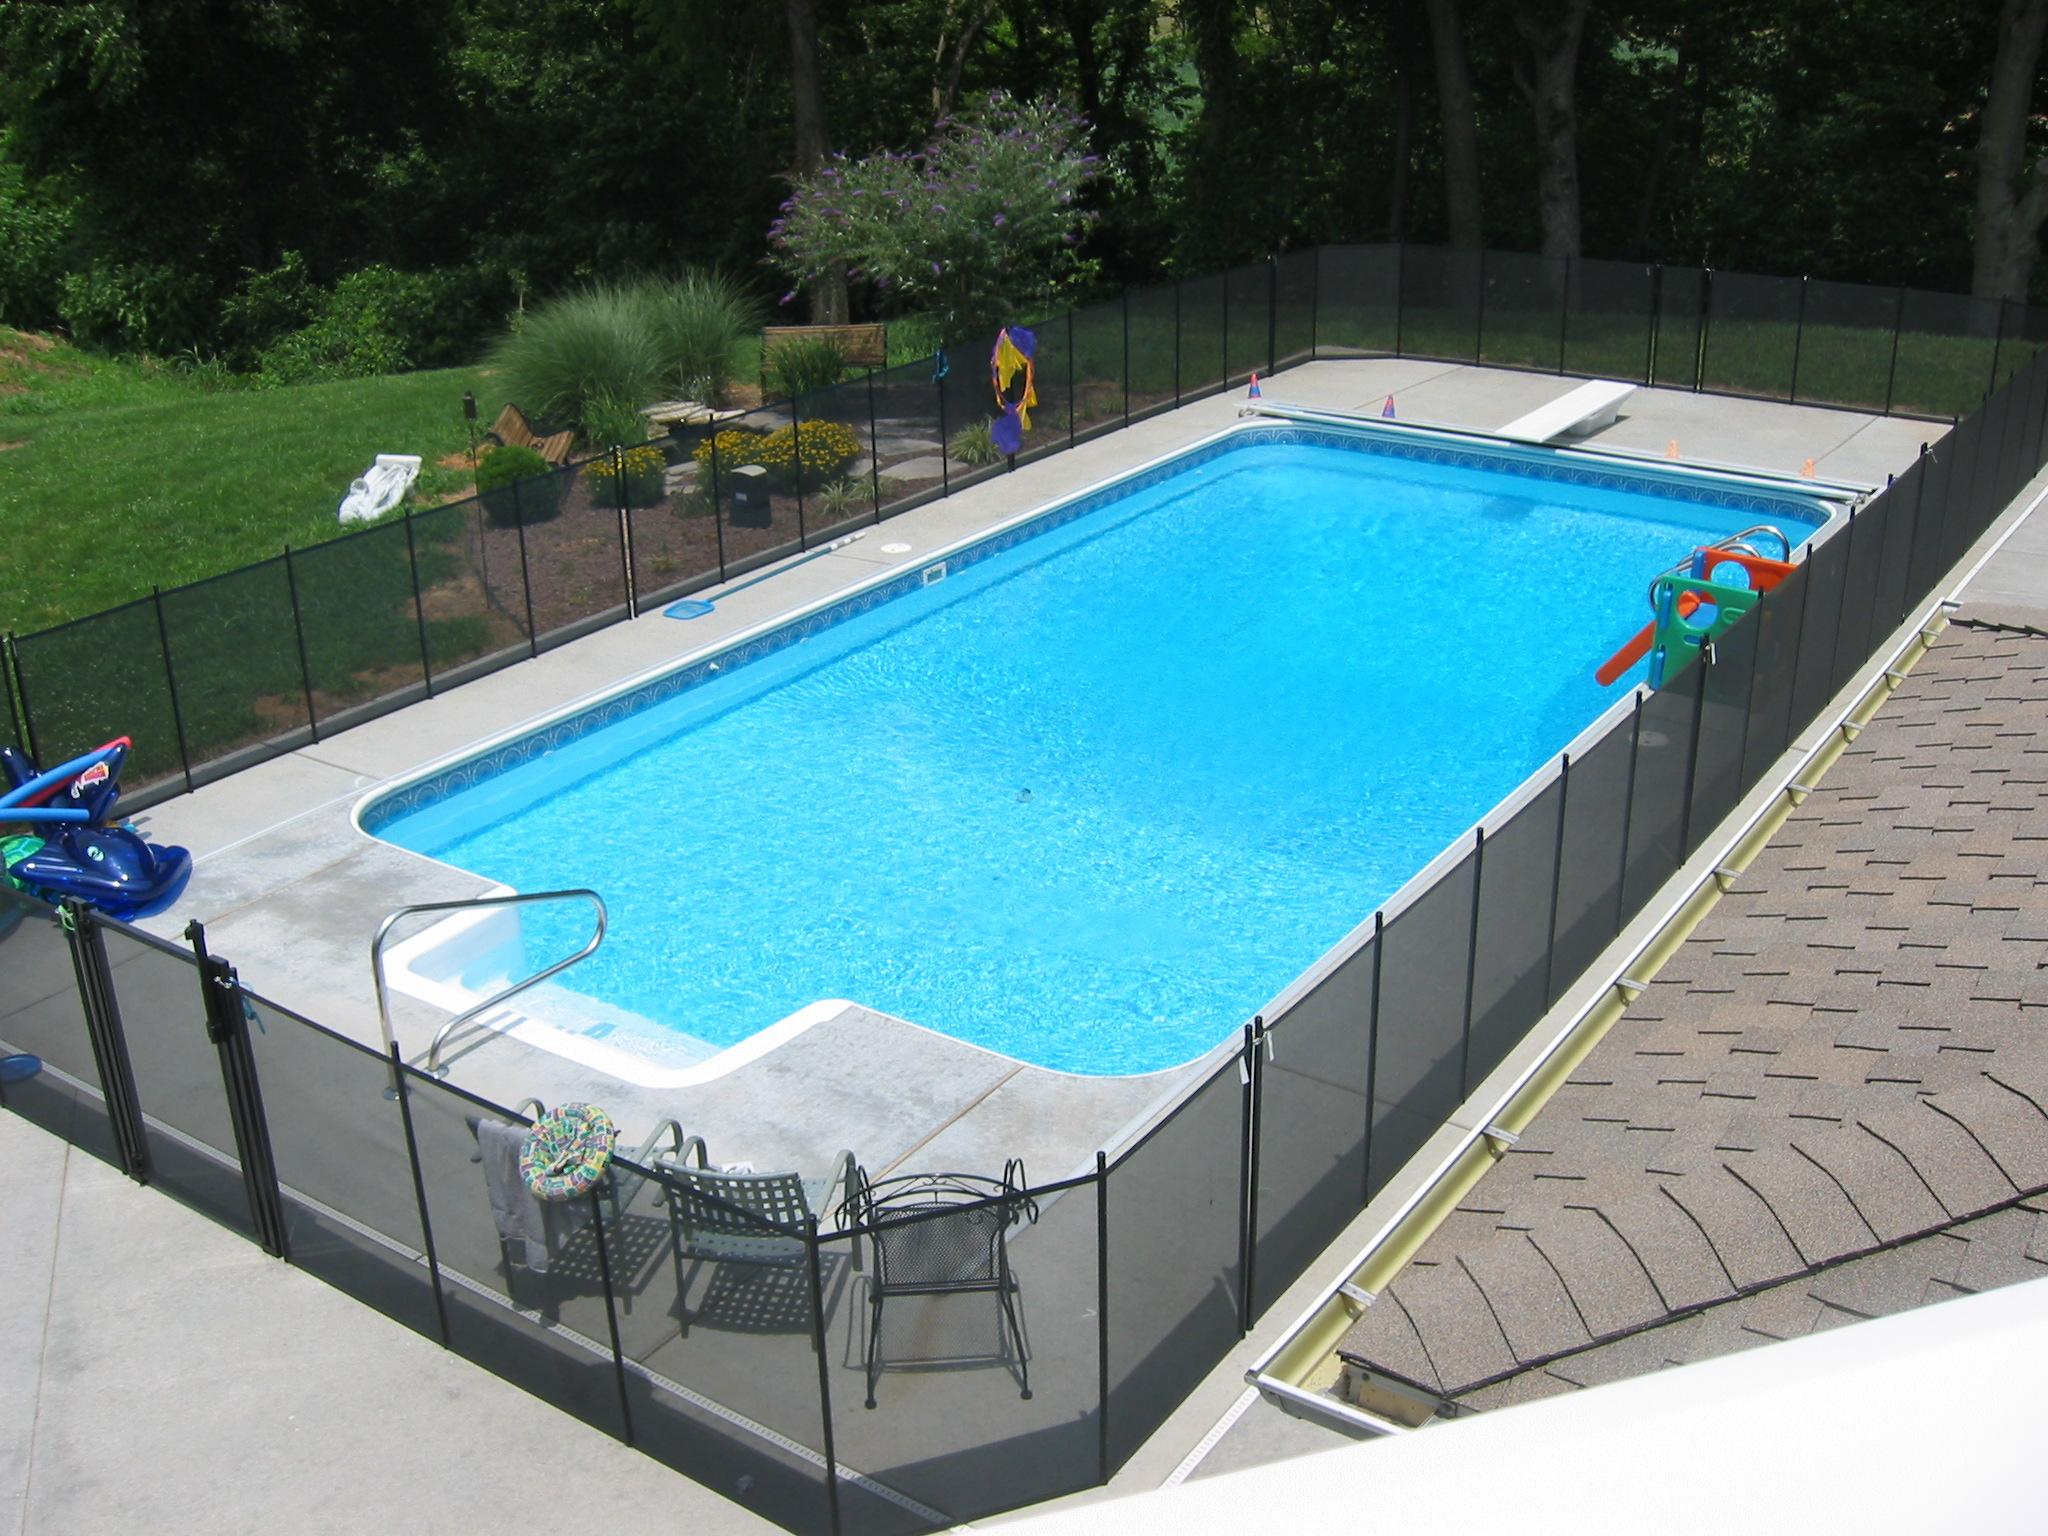 25 Years And Going Strong 1 2 3 Previous Next Life Saver Pool Fence